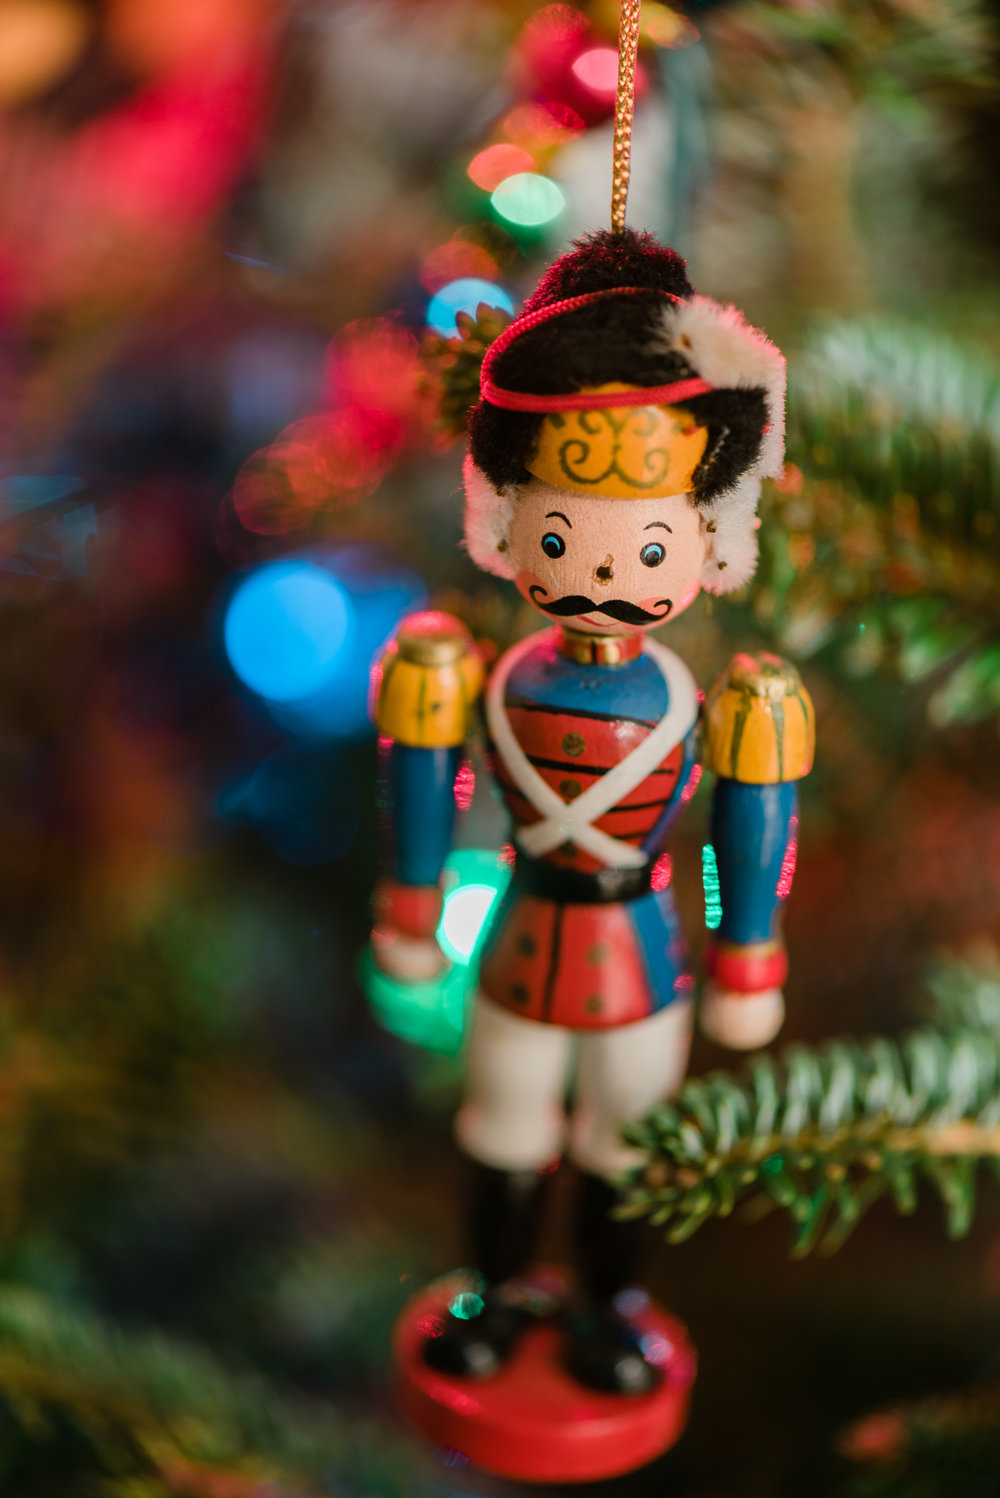 Sentimental-Christmas-Tree-Ornament-Toy-Soldier-Sarah-Danielle-Portraits-Florida-Photographer